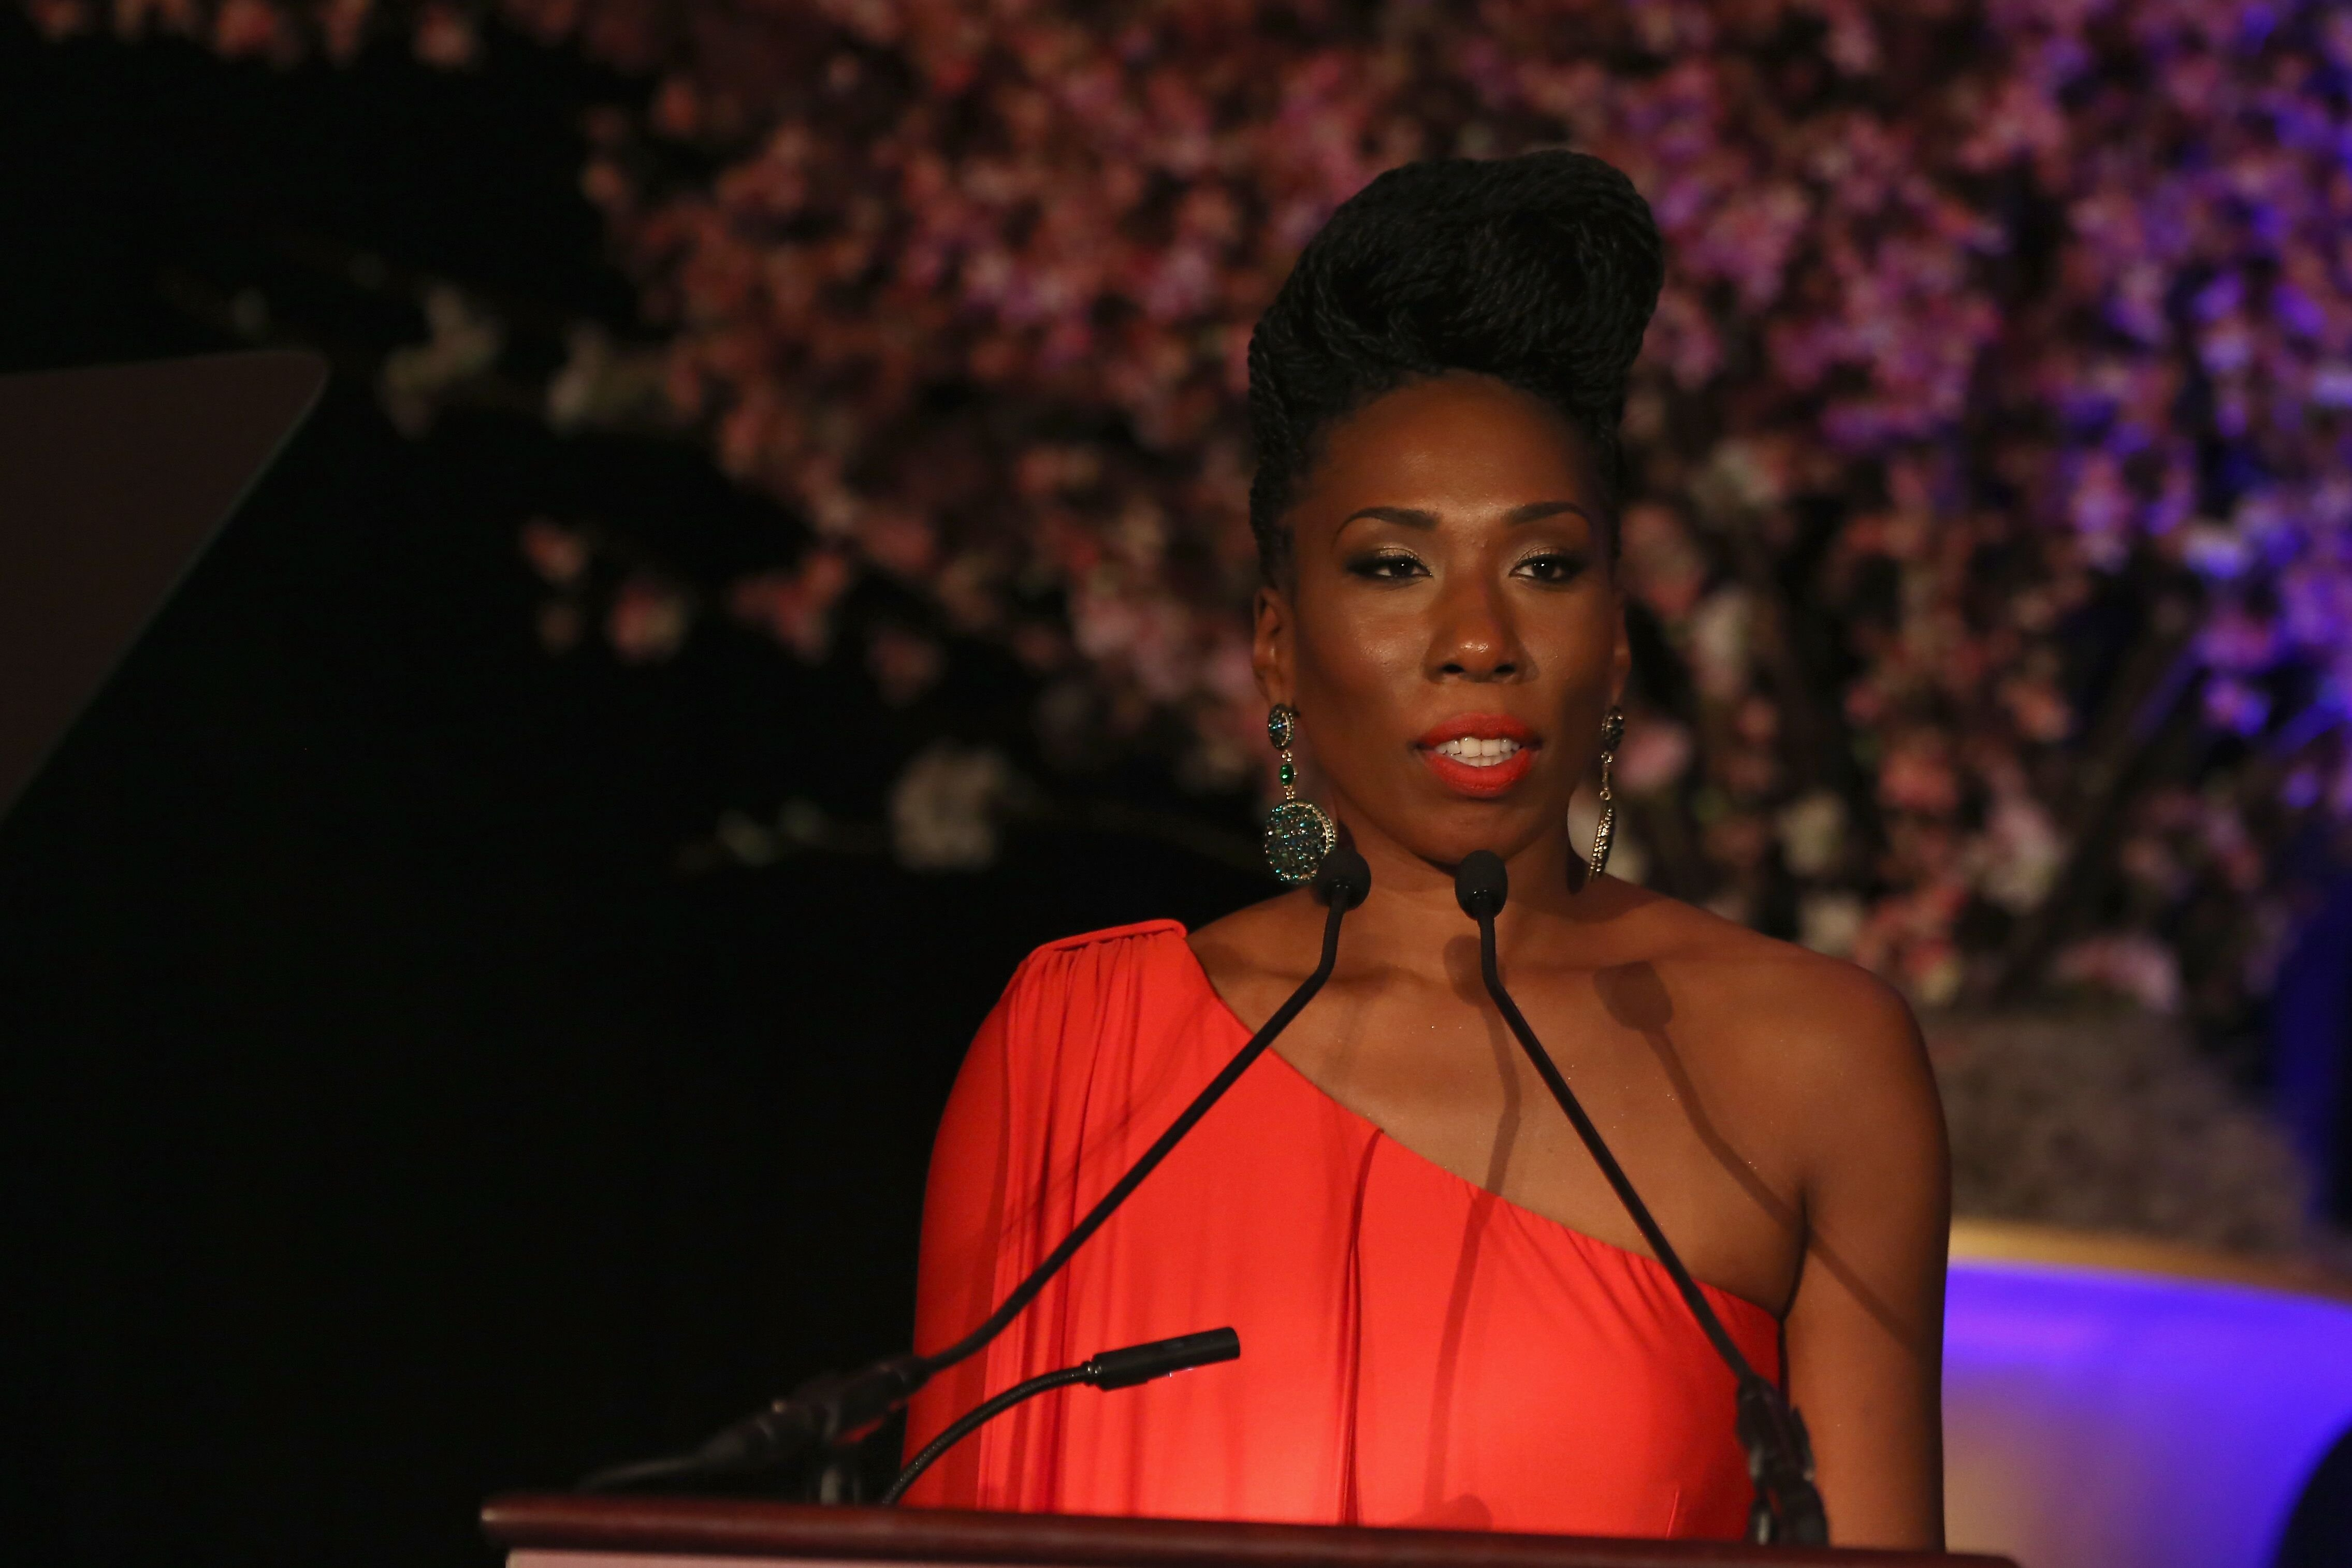 Brandi Harvey attends the 2014 Steve & Marjorie Harvey Foundation Gala presented by Coca-Cola at the Hilton Chicago on May 3, 2014 in Chicago, Illinois | Photo: Getty Images